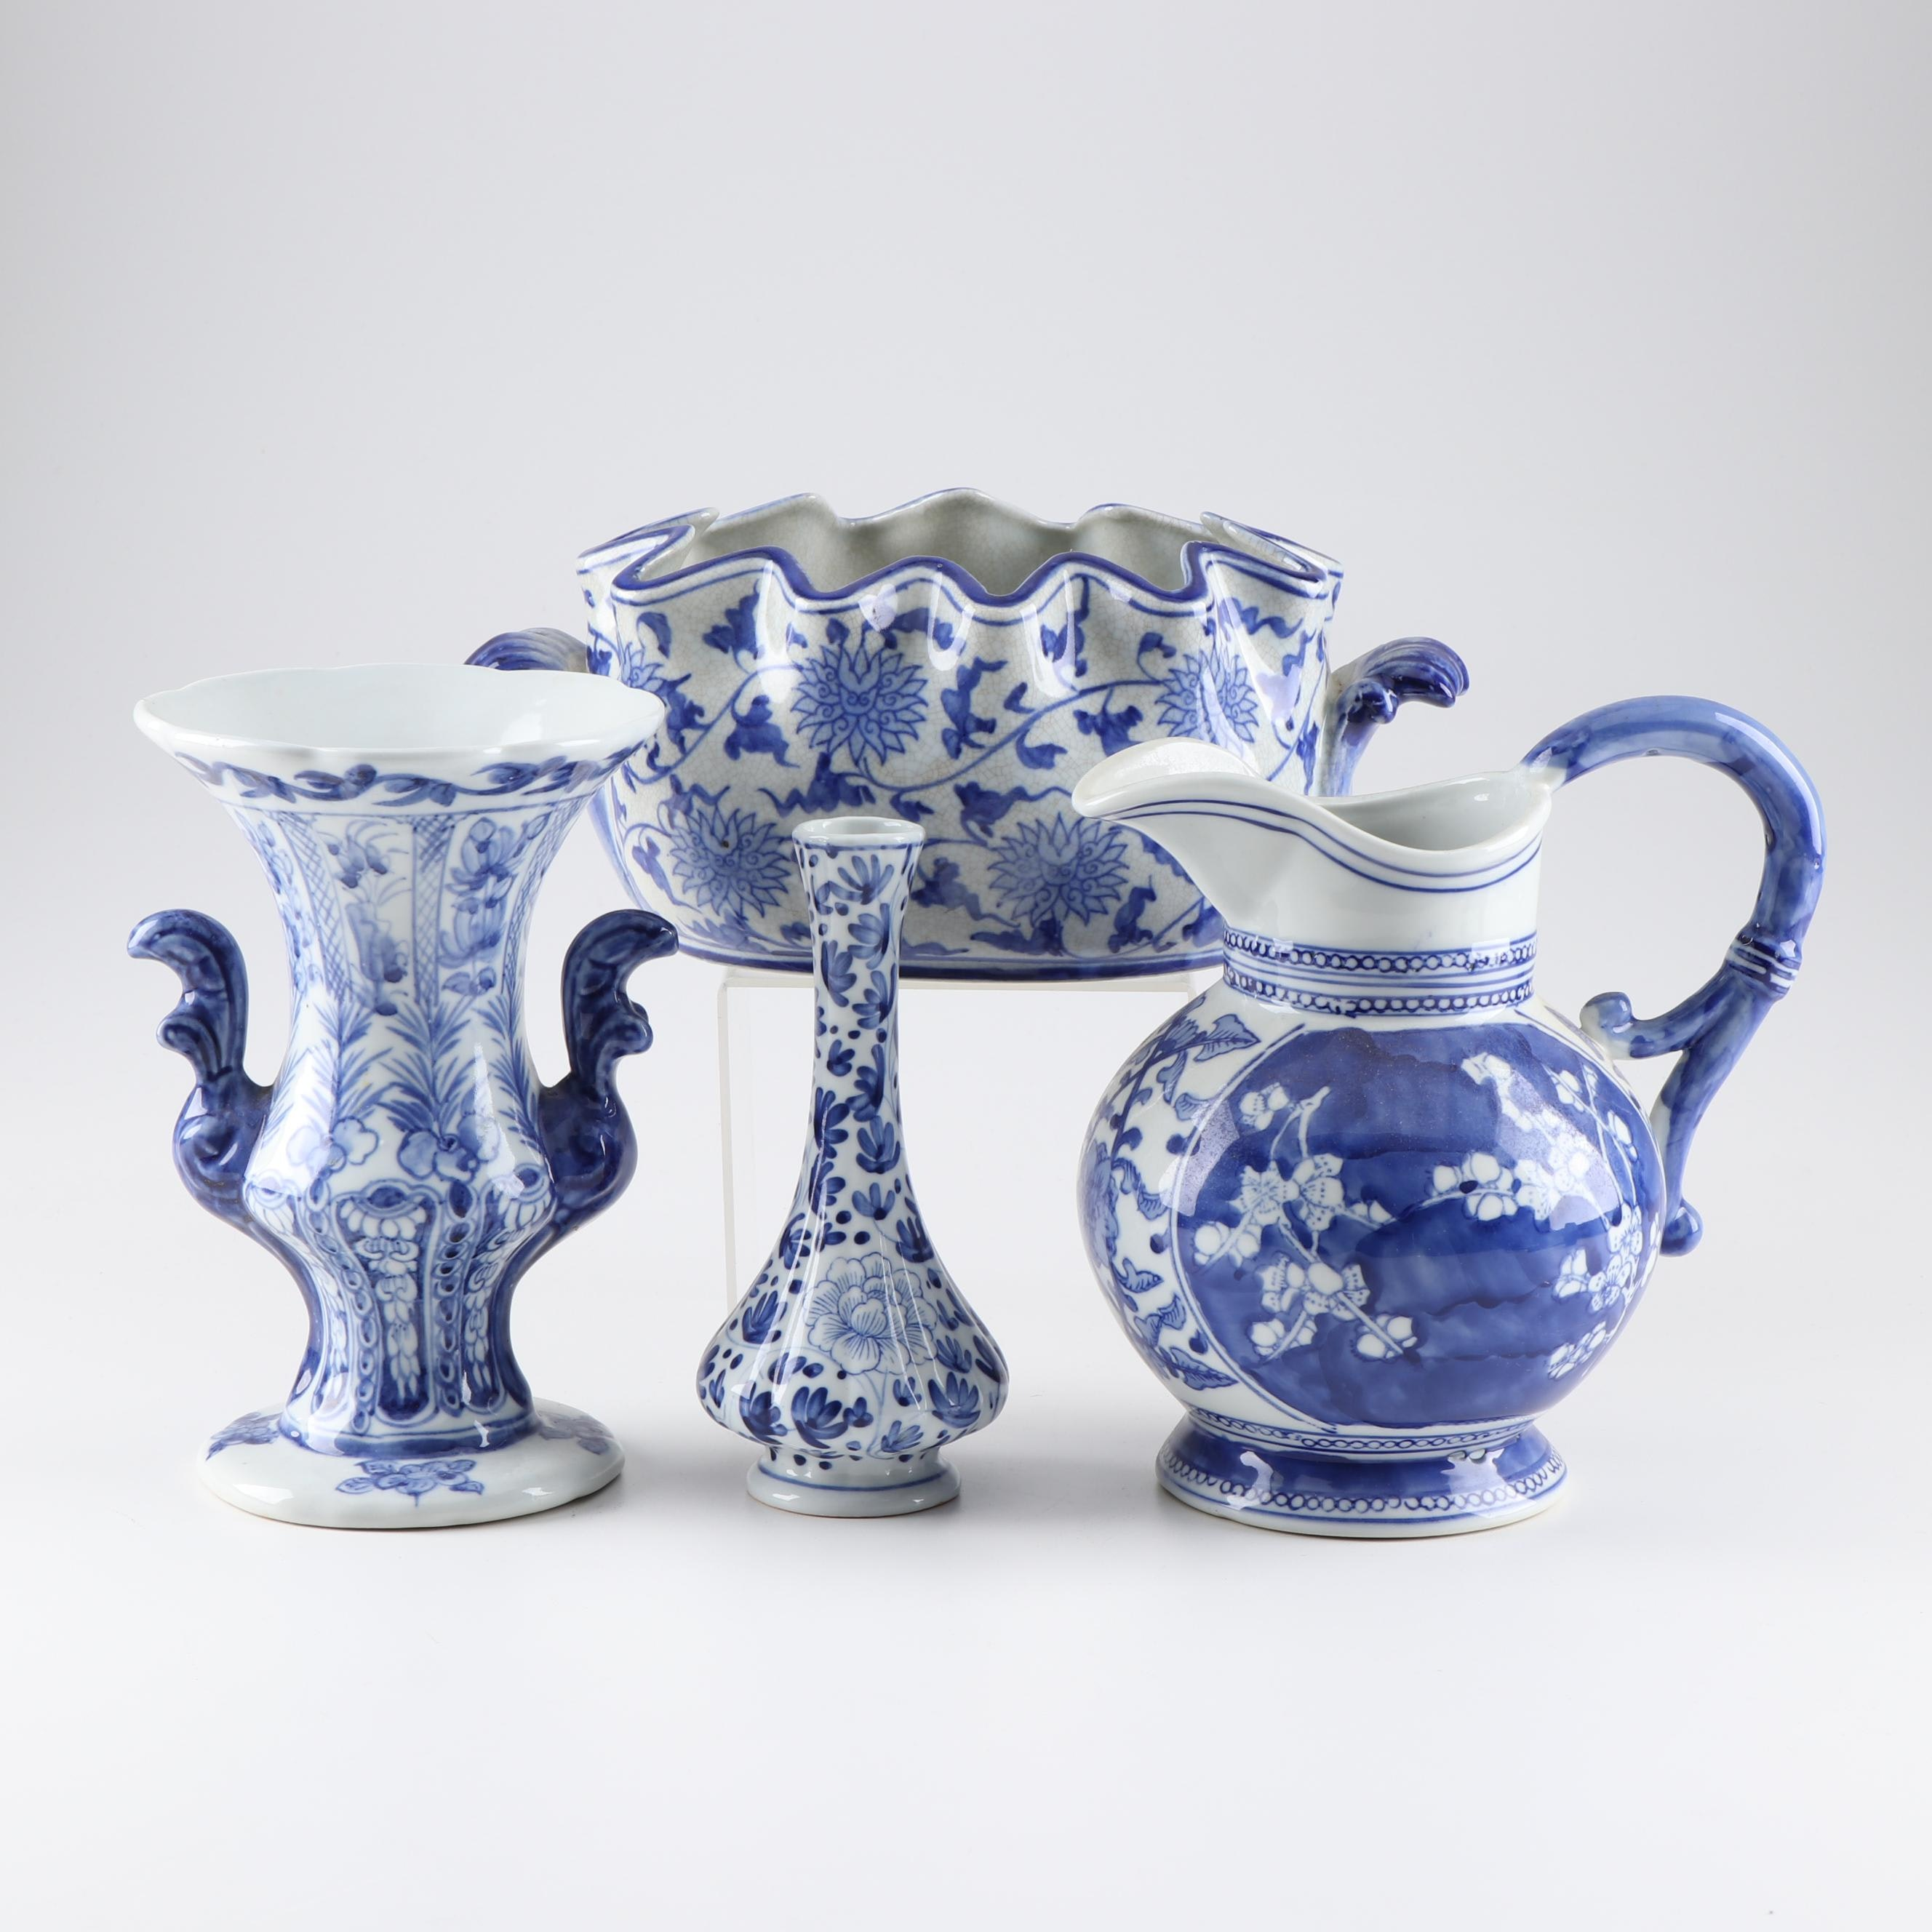 Blue and White Asian Inspired Tableware